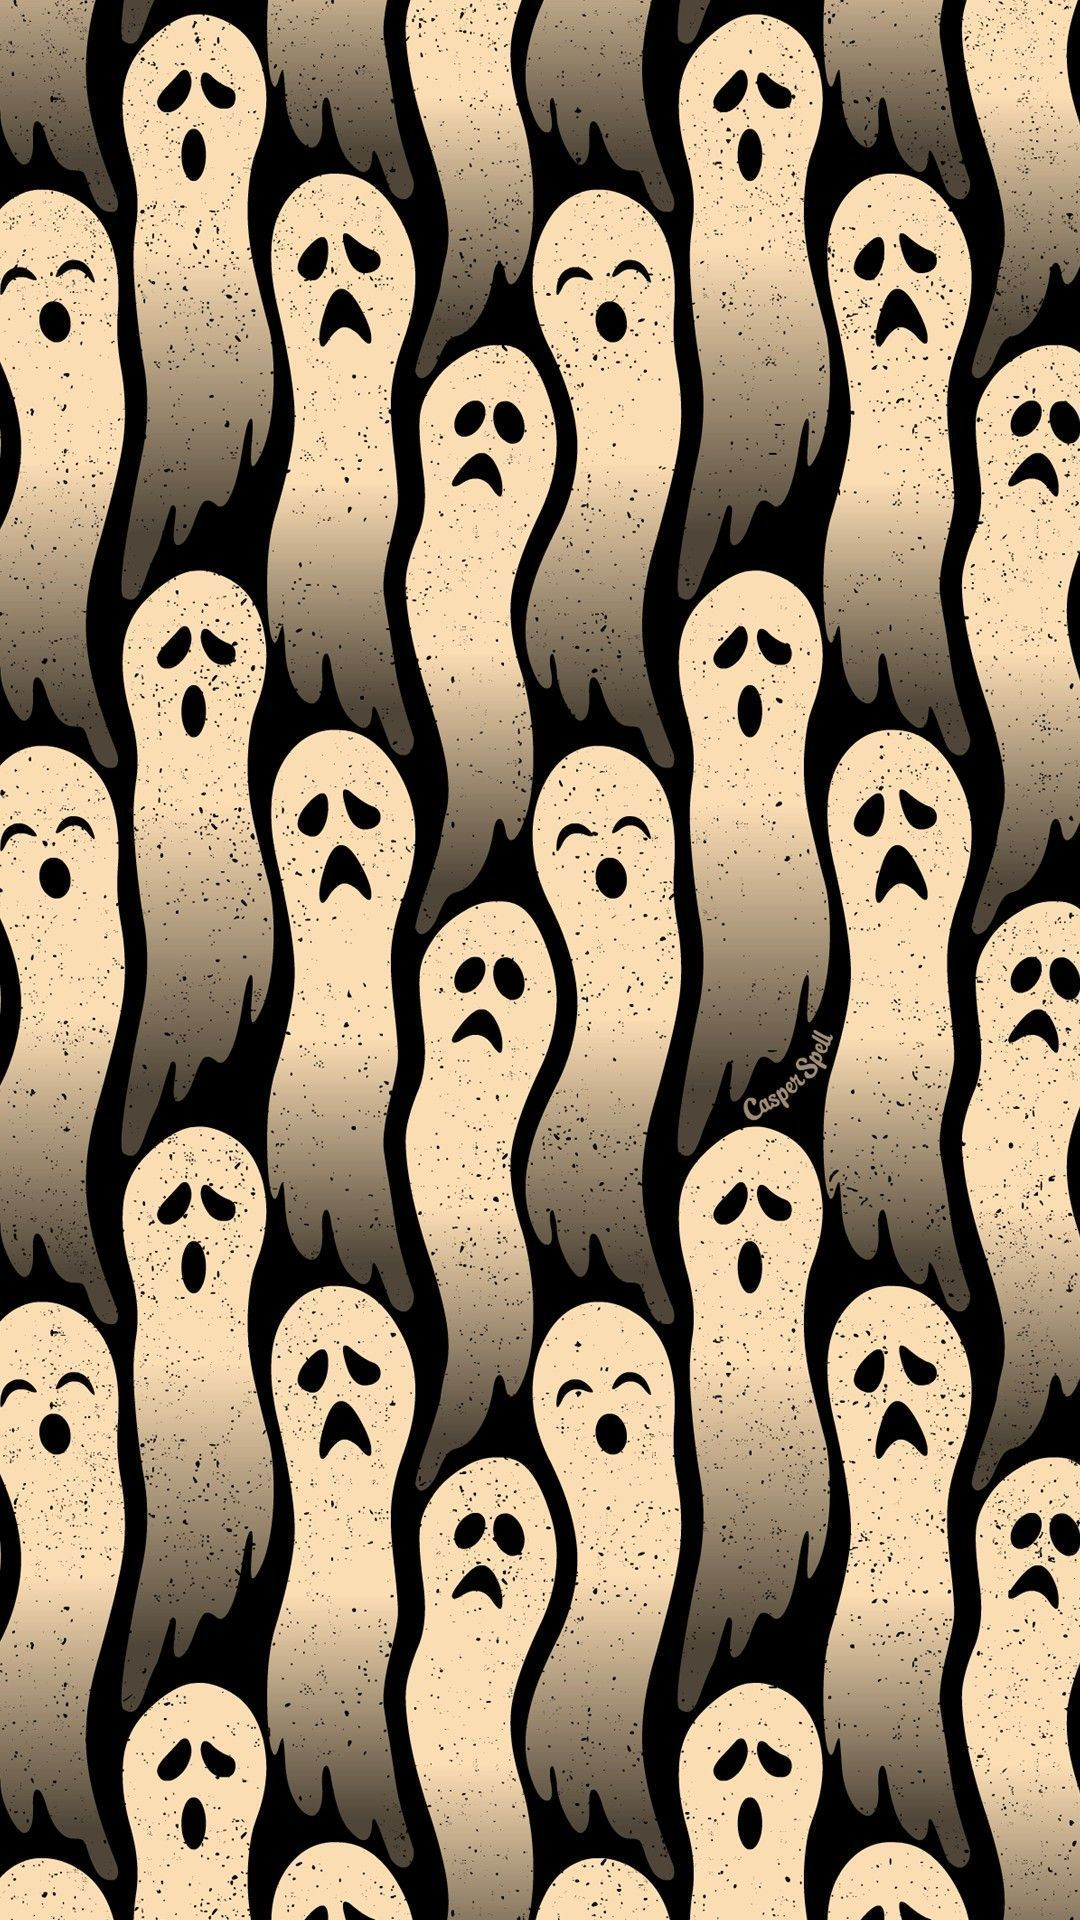 Ghosts repeat pattern Halloween background wallpaper patterns backgrounds wallpapers spirits ethereal spooky cute Halloween Arts art illustration drawing original free iPhone phone Casper spell (www.casperspell.com) #halloweenbackgroundswallpapers Ghosts repeat pattern Halloween background wallpaper patterns backgrounds wallpapers spirits ethereal spooky cute Halloween Arts art illustration drawing original free iPhone phone Casper spell (www.casperspell.com) #halloweenbackgroundswallpapers Ghos #halloweenbackgroundswallpapers